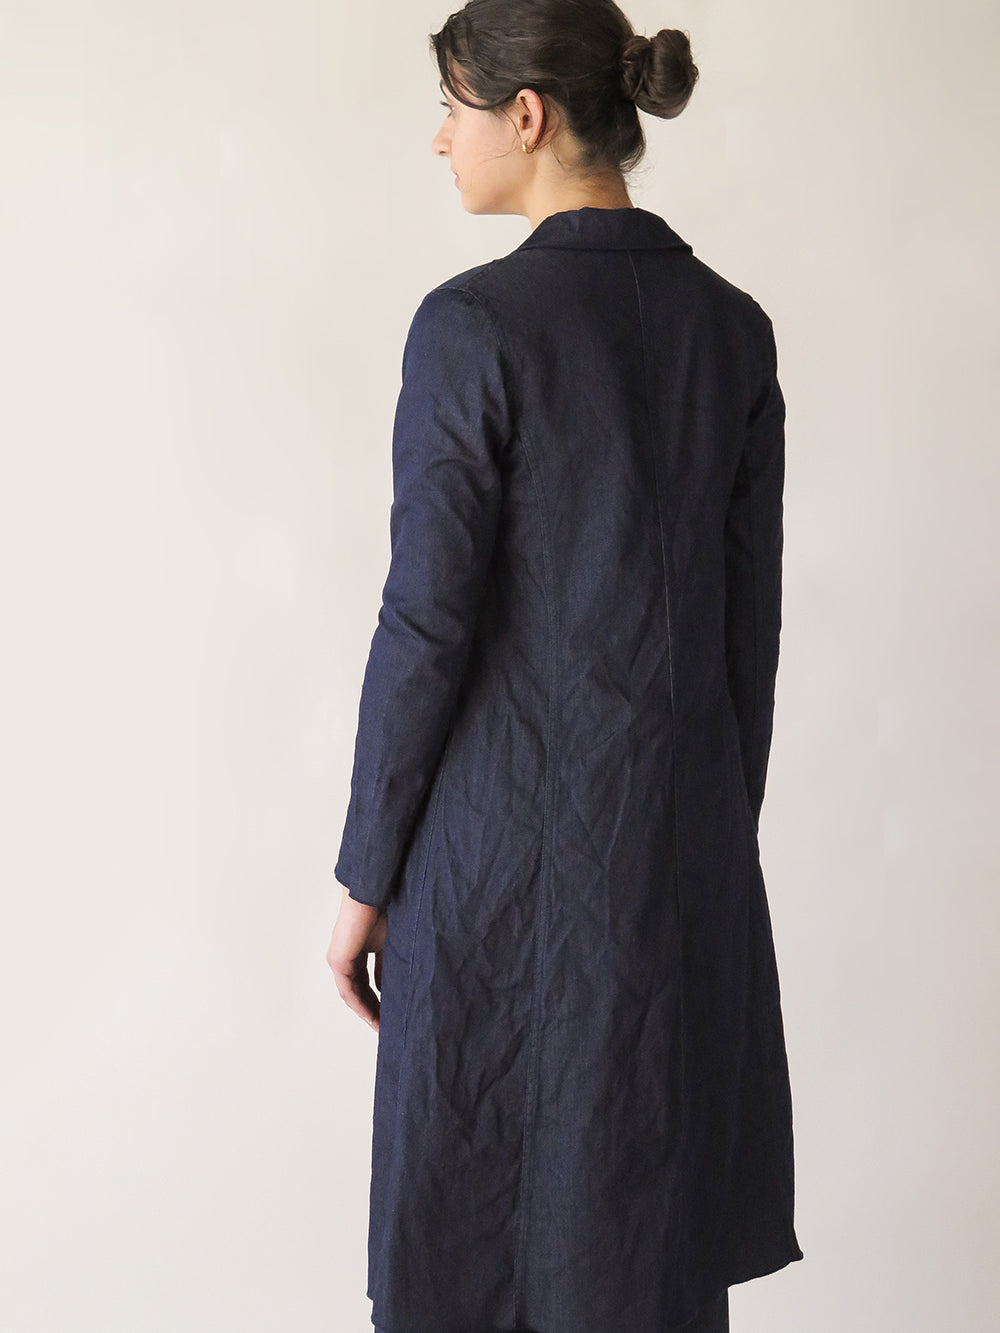 baudelaire coat in denim